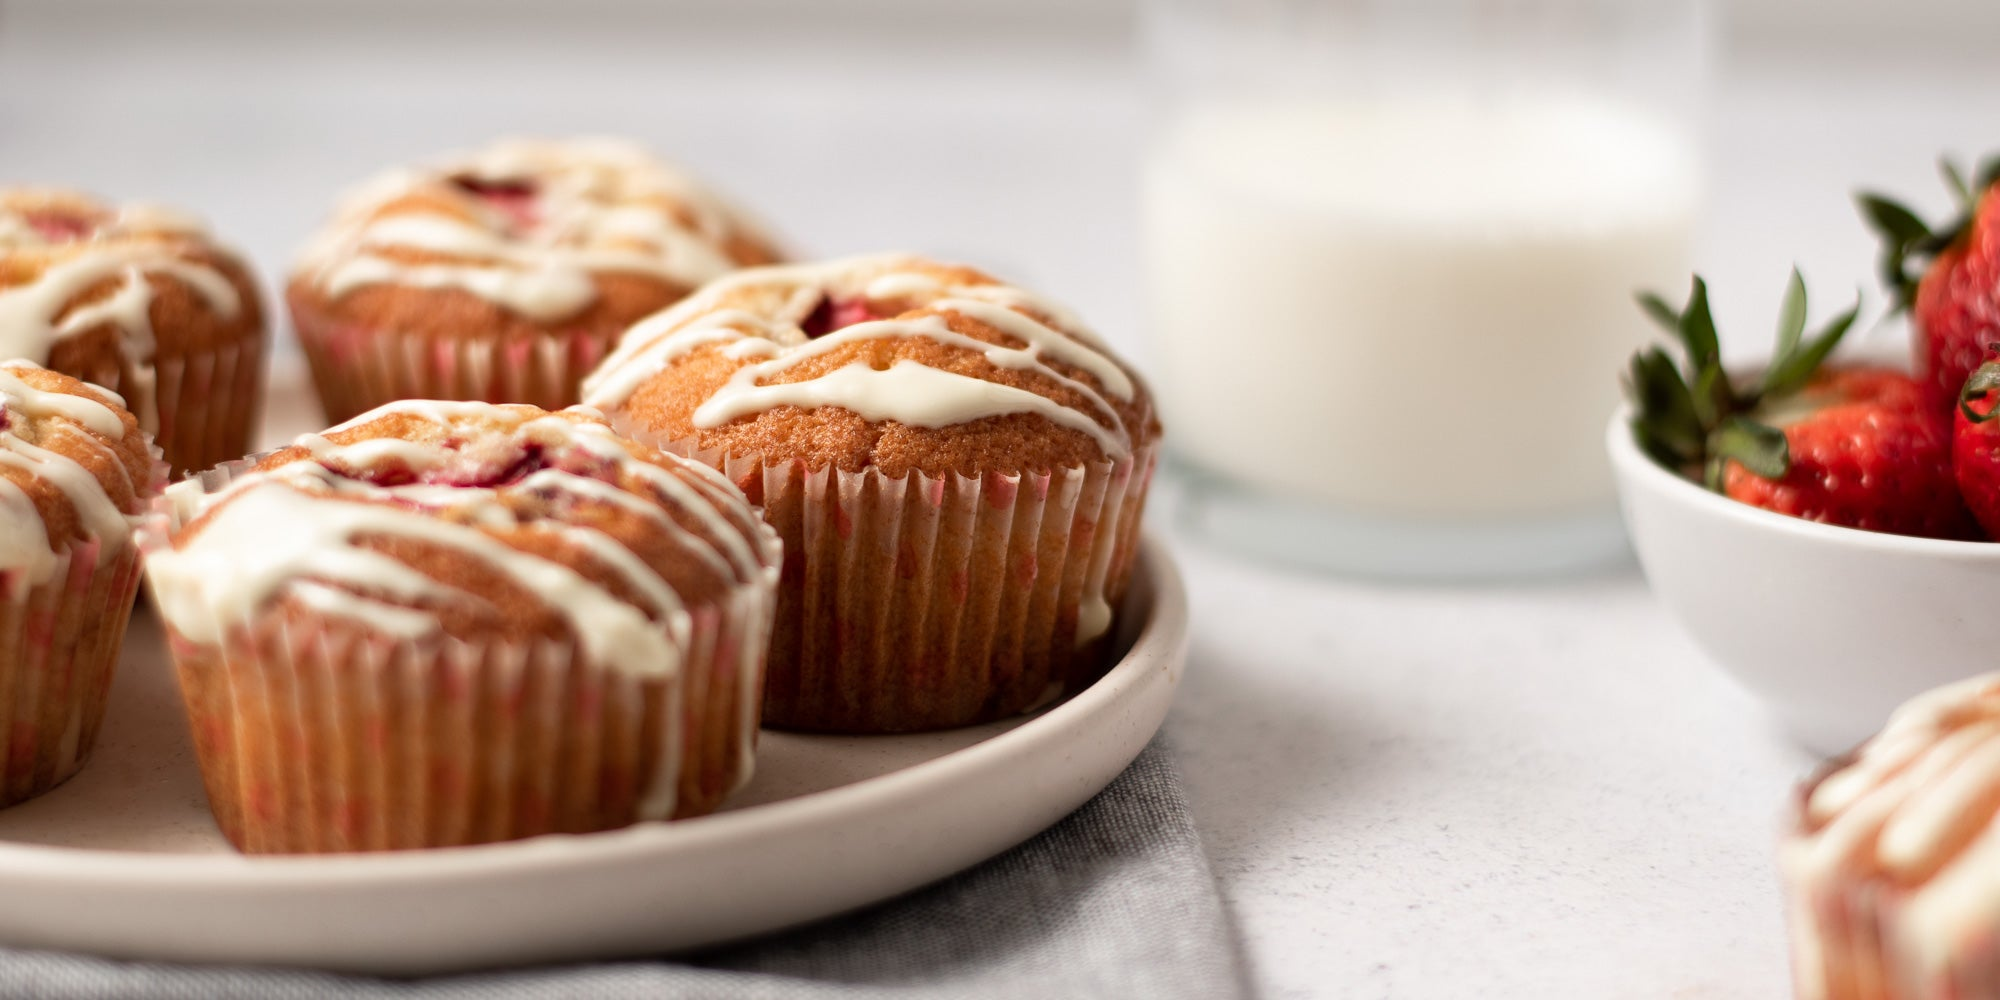 Cupcakes with a strawberry in the centre drizzled with white chocolate